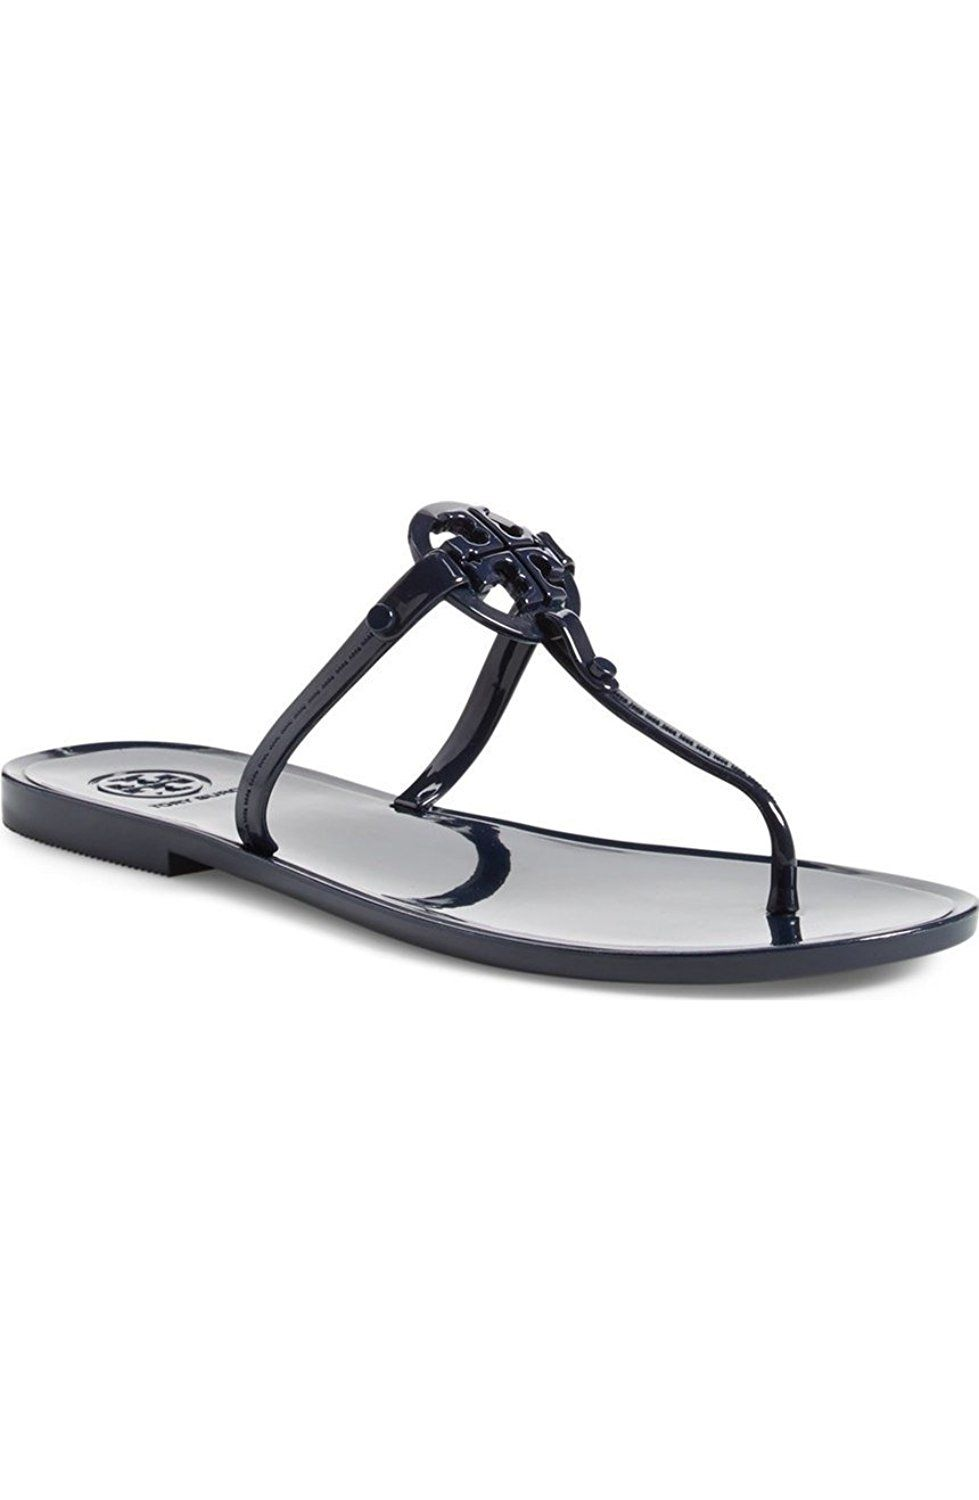 475e4acc66fe8 Tory Burch Jelly Thong Sandal Tory Navy     To view further for this item